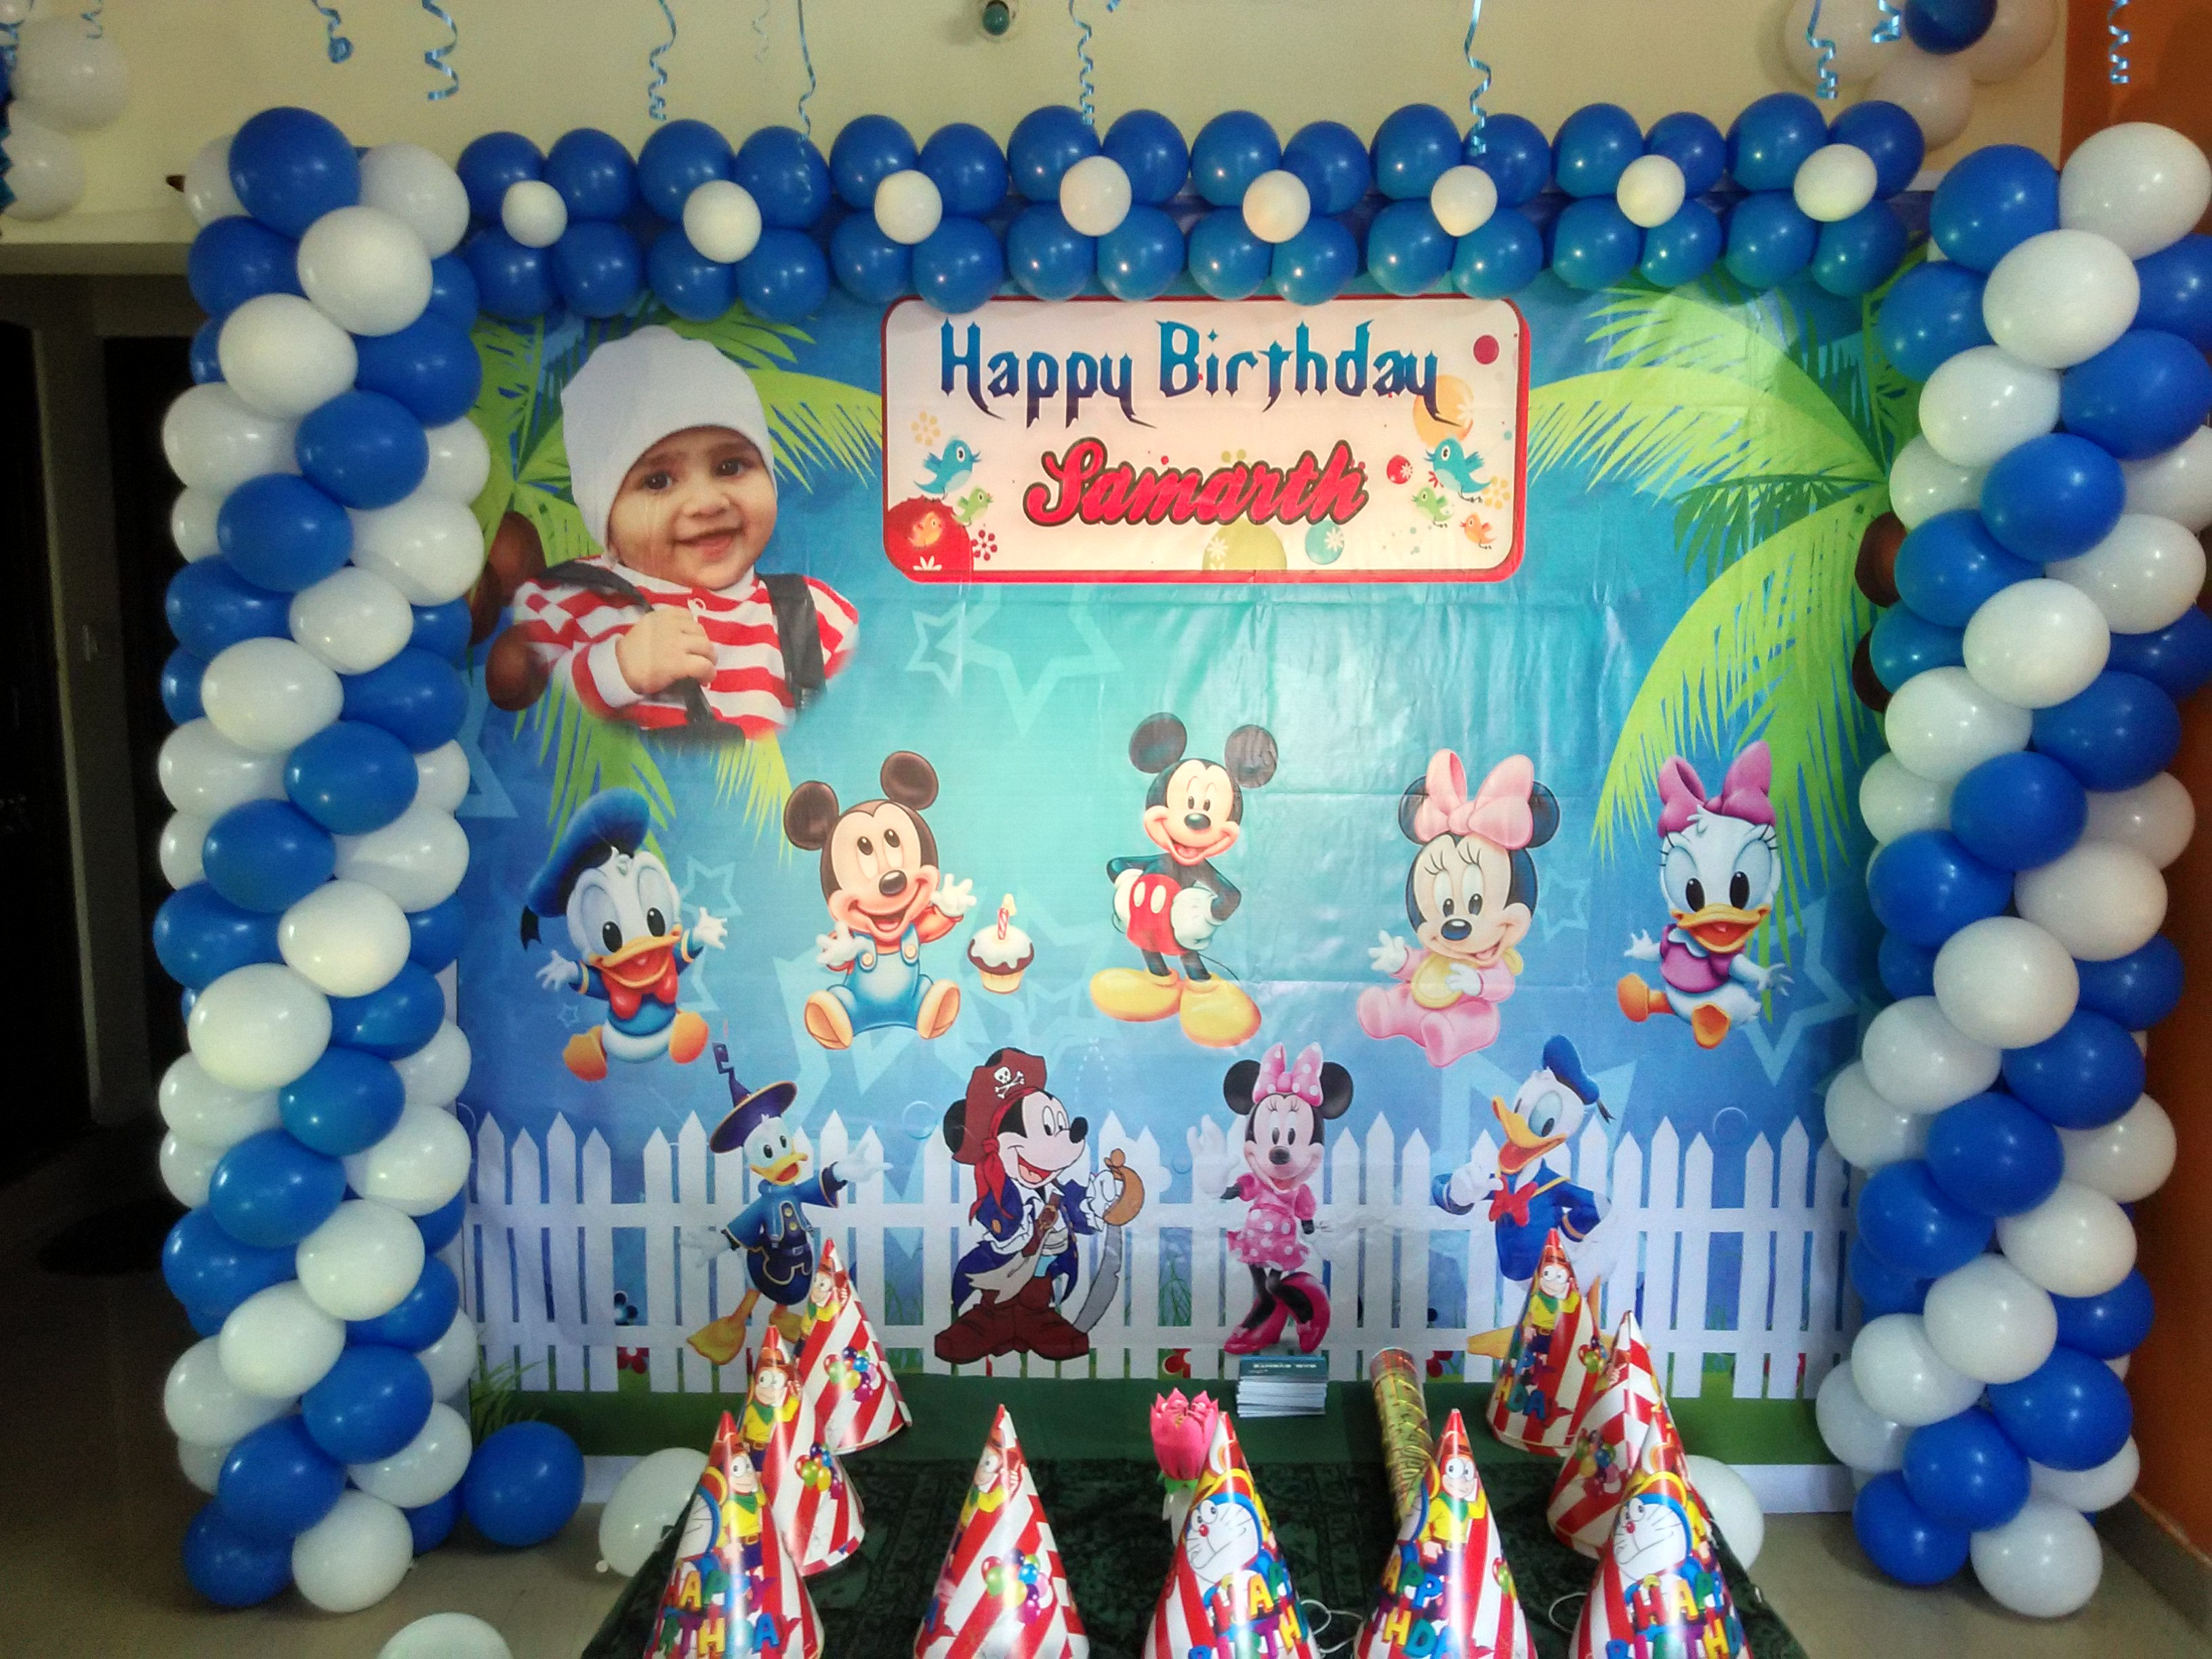 Mickey mouse theme birthday banner balloon decor bangalore for Balloon banner decoration